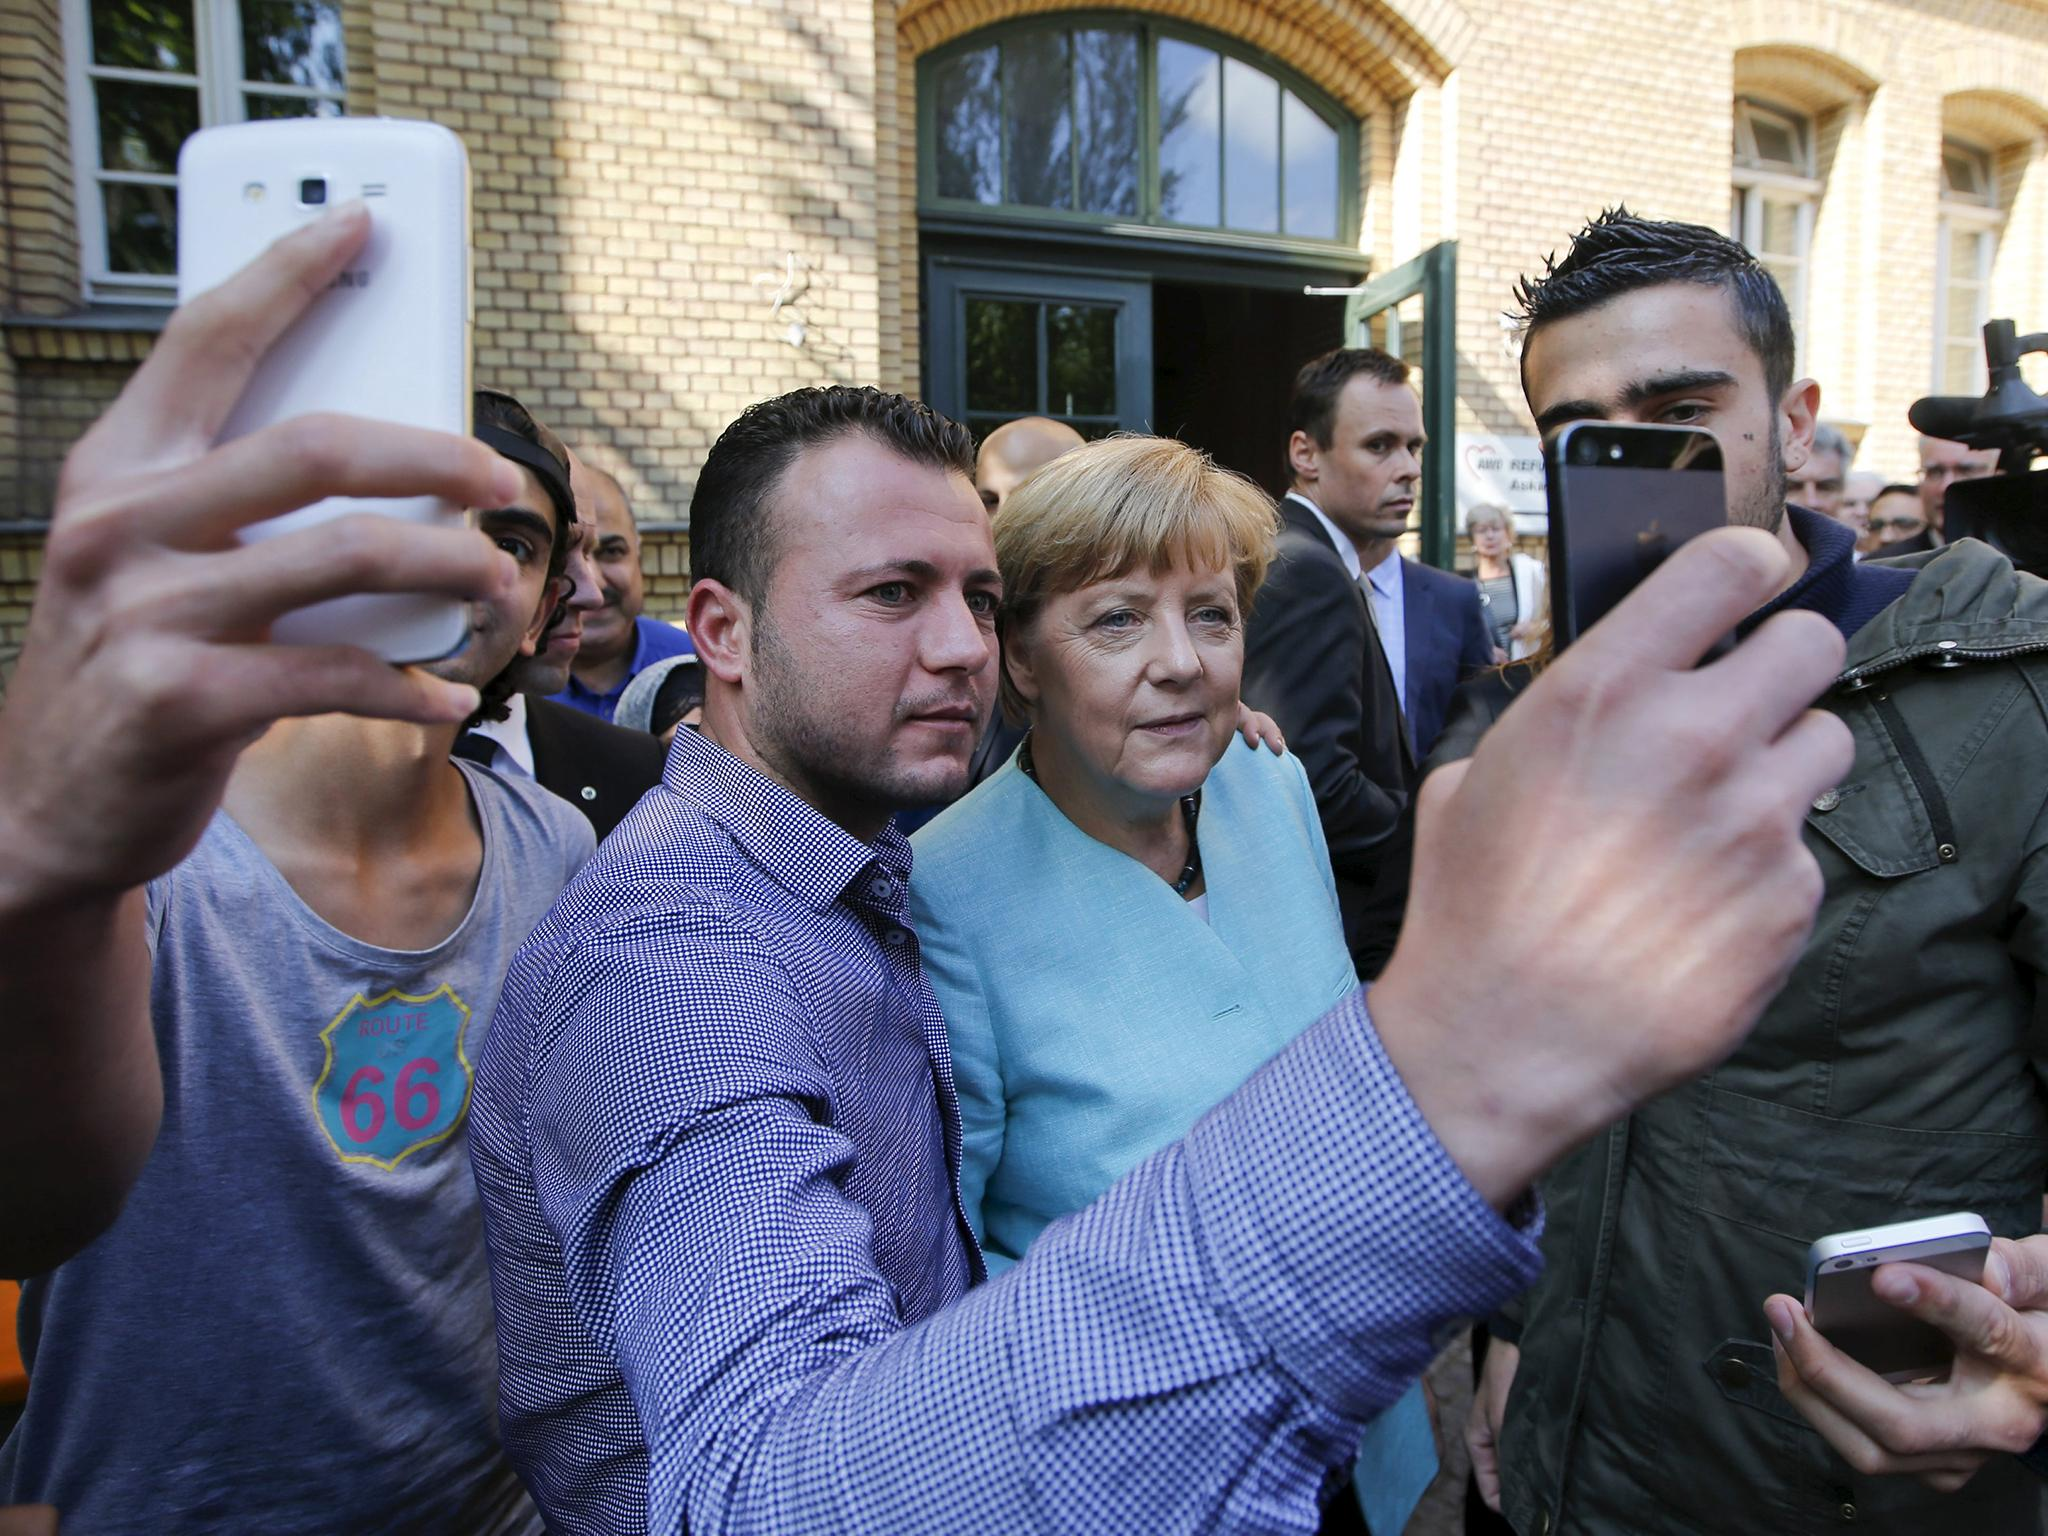 How Angela Merkel's open-door immigration policy protects Germany from terrorism in the long-run